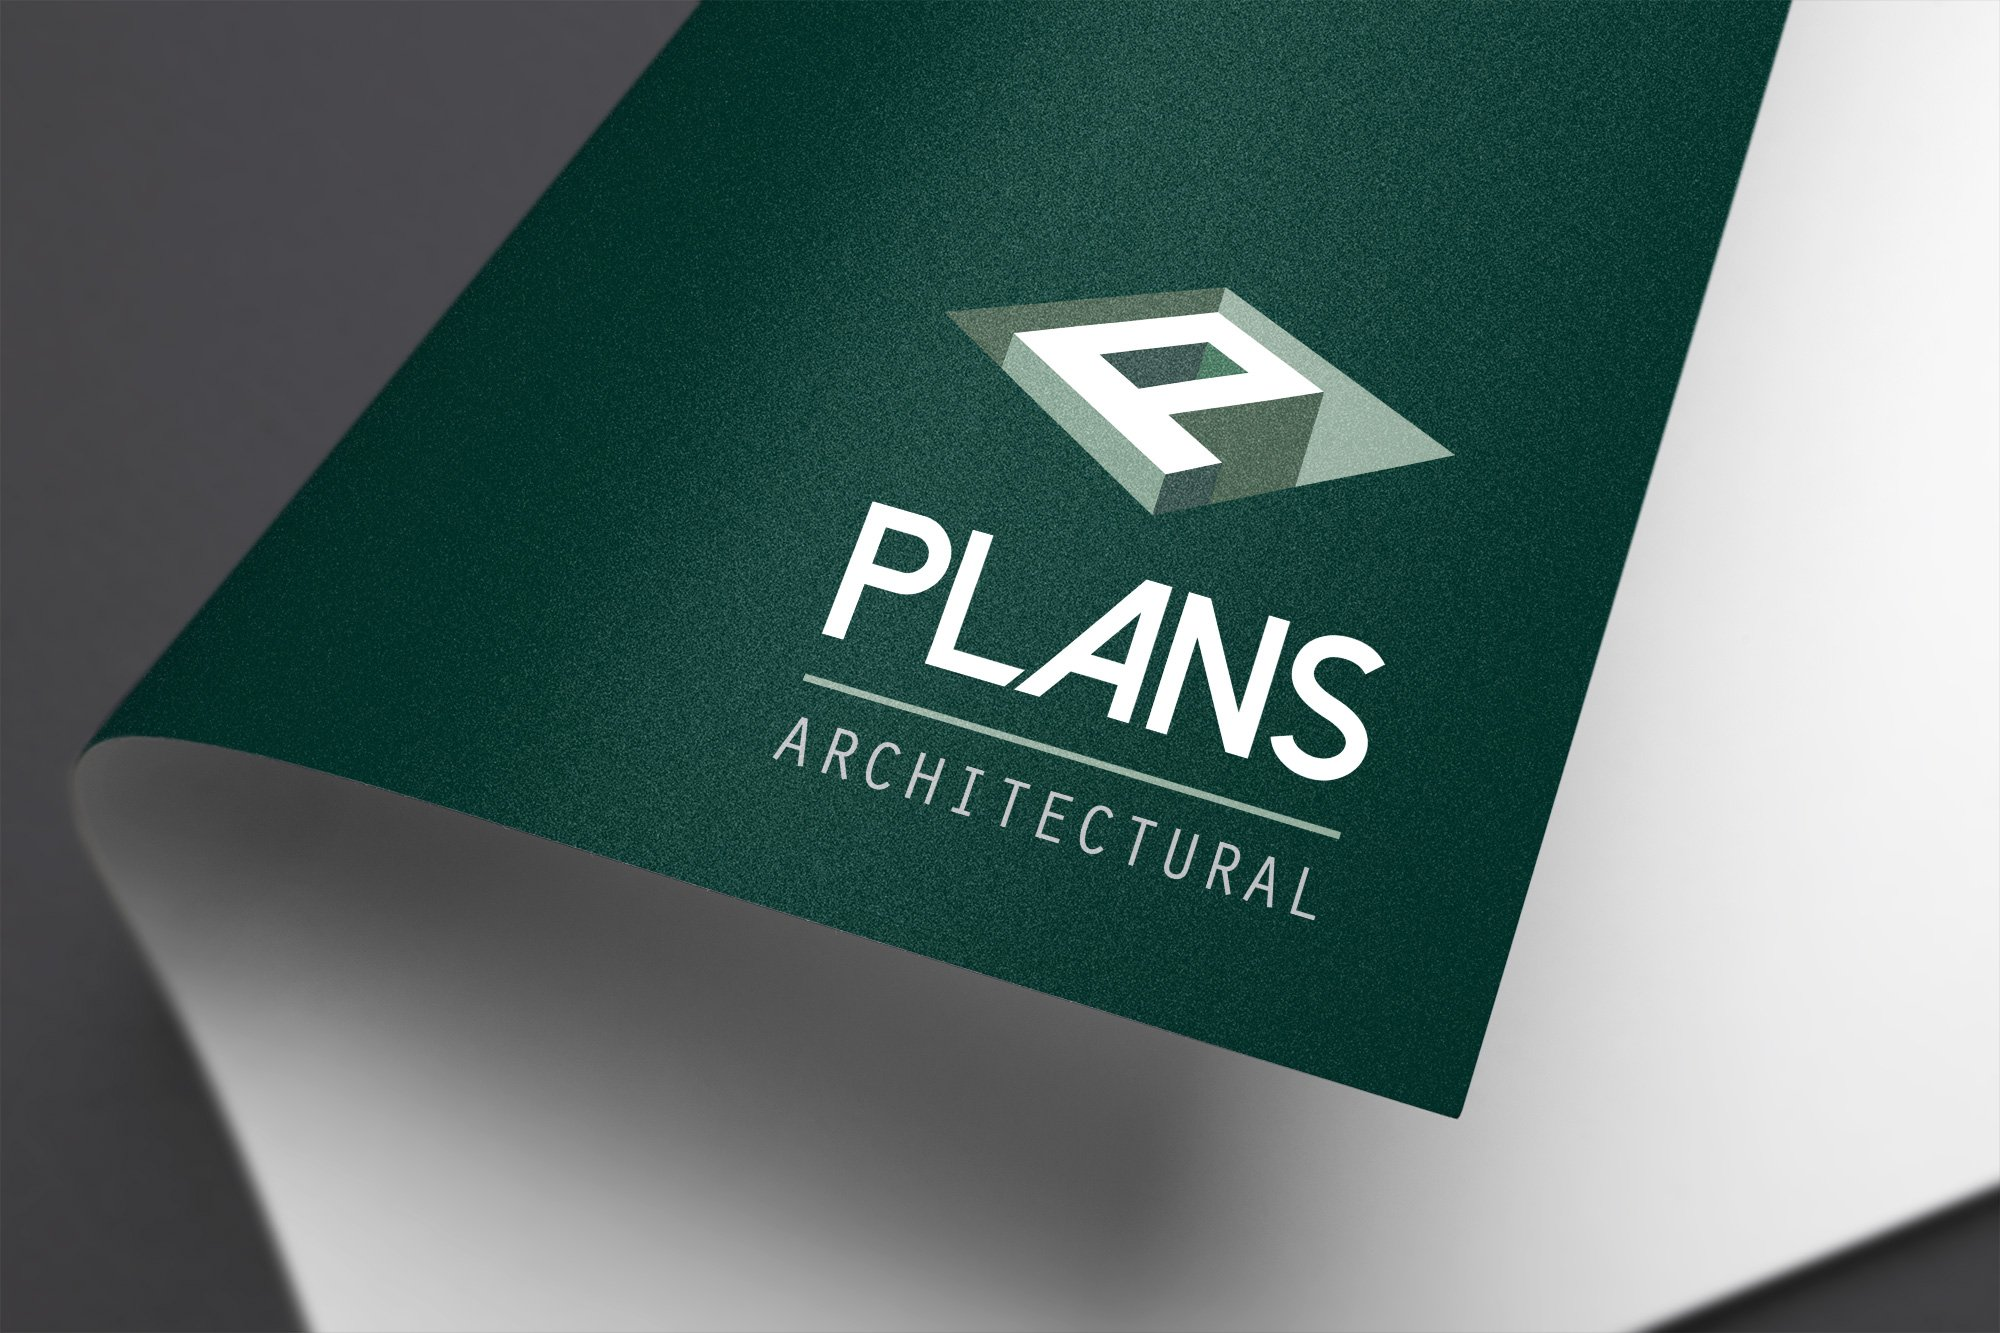 Plans Architectural Consultants